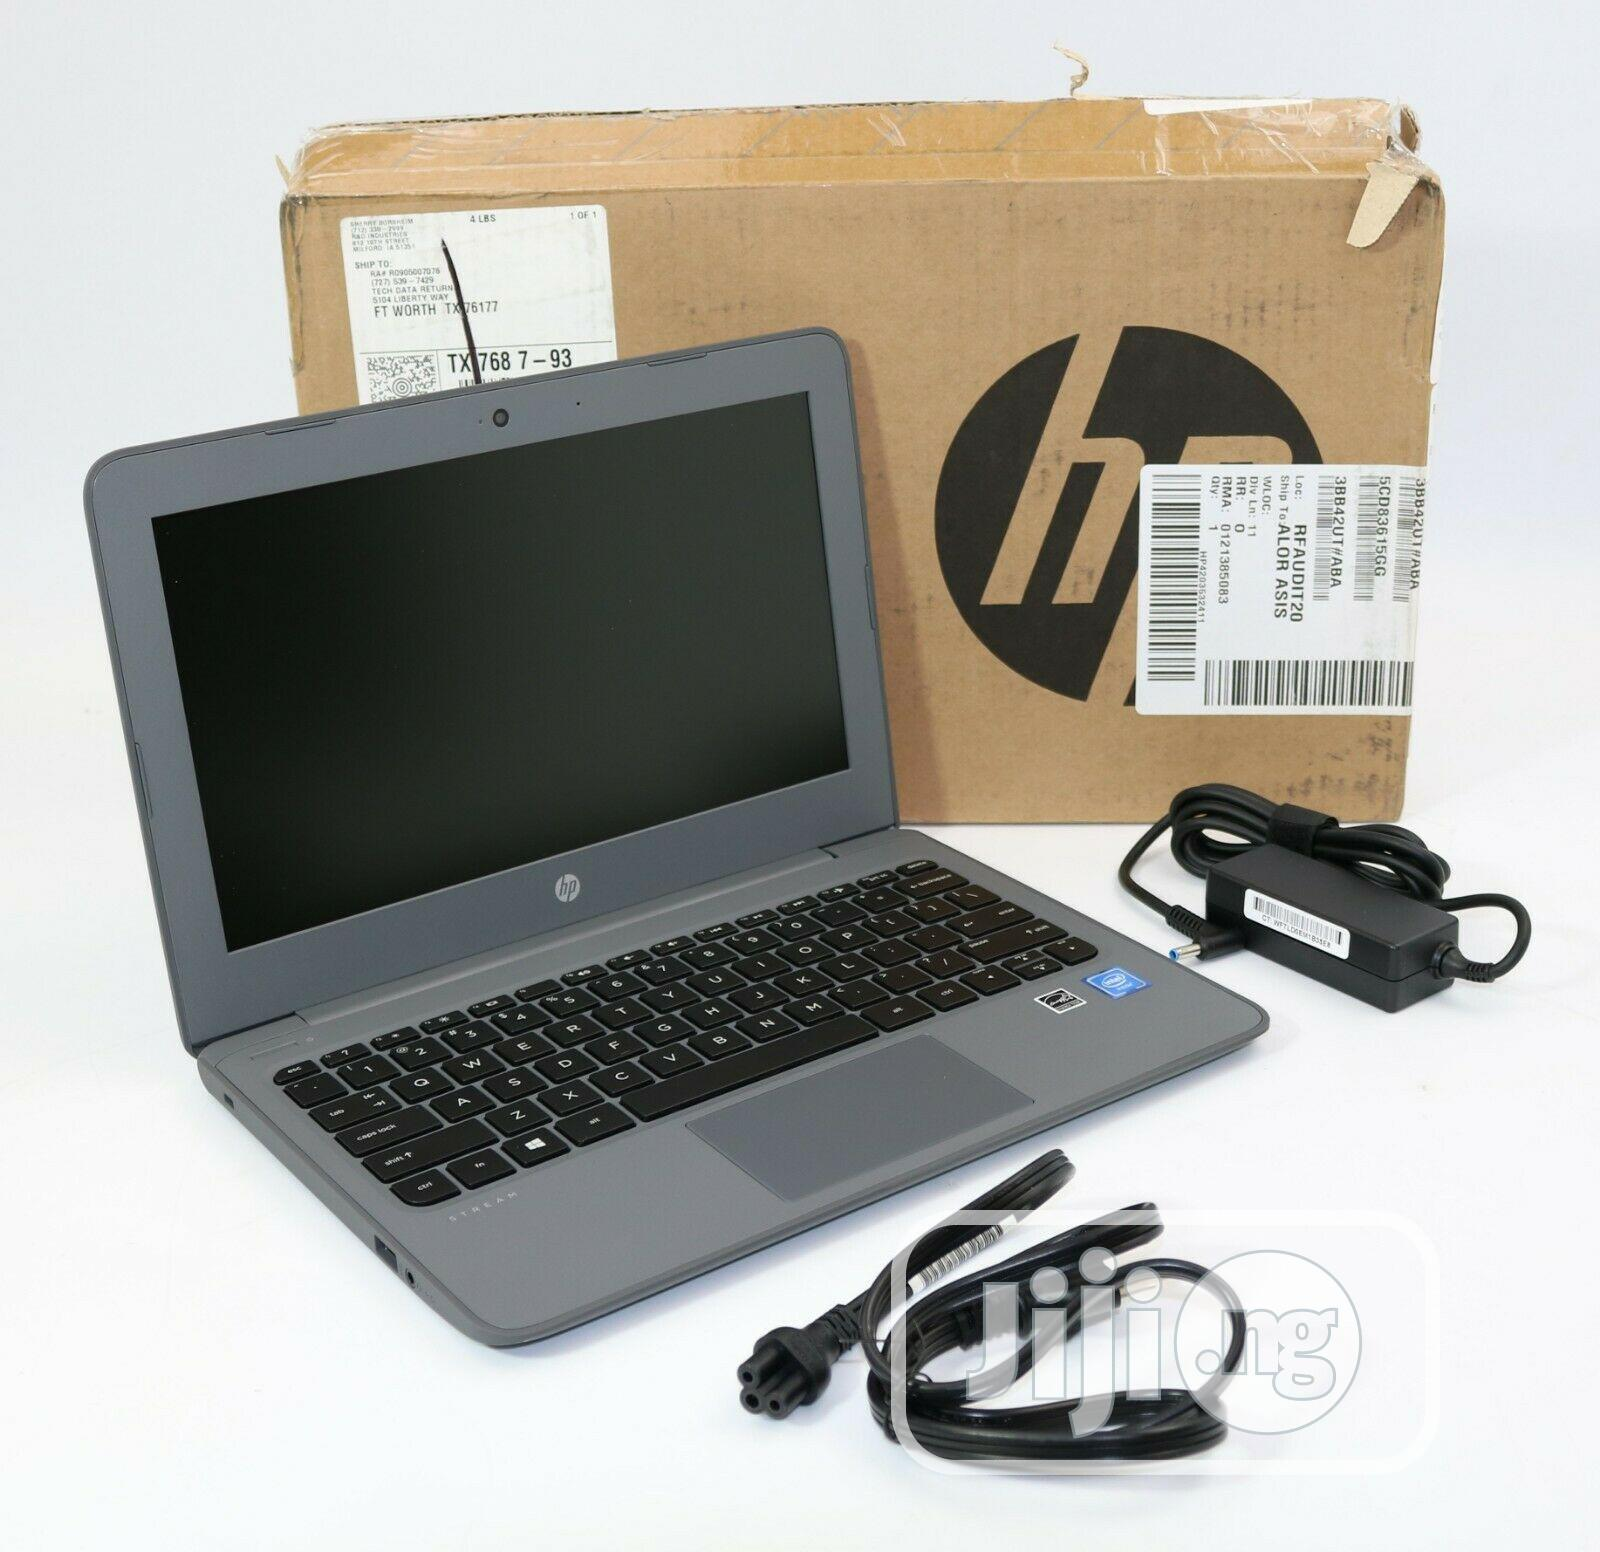 New Laptop HP Stream 11 Pro G4 EE 4GB Intel Celeron SSD 60GB | Laptops & Computers for sale in Ikeja, Lagos State, Nigeria